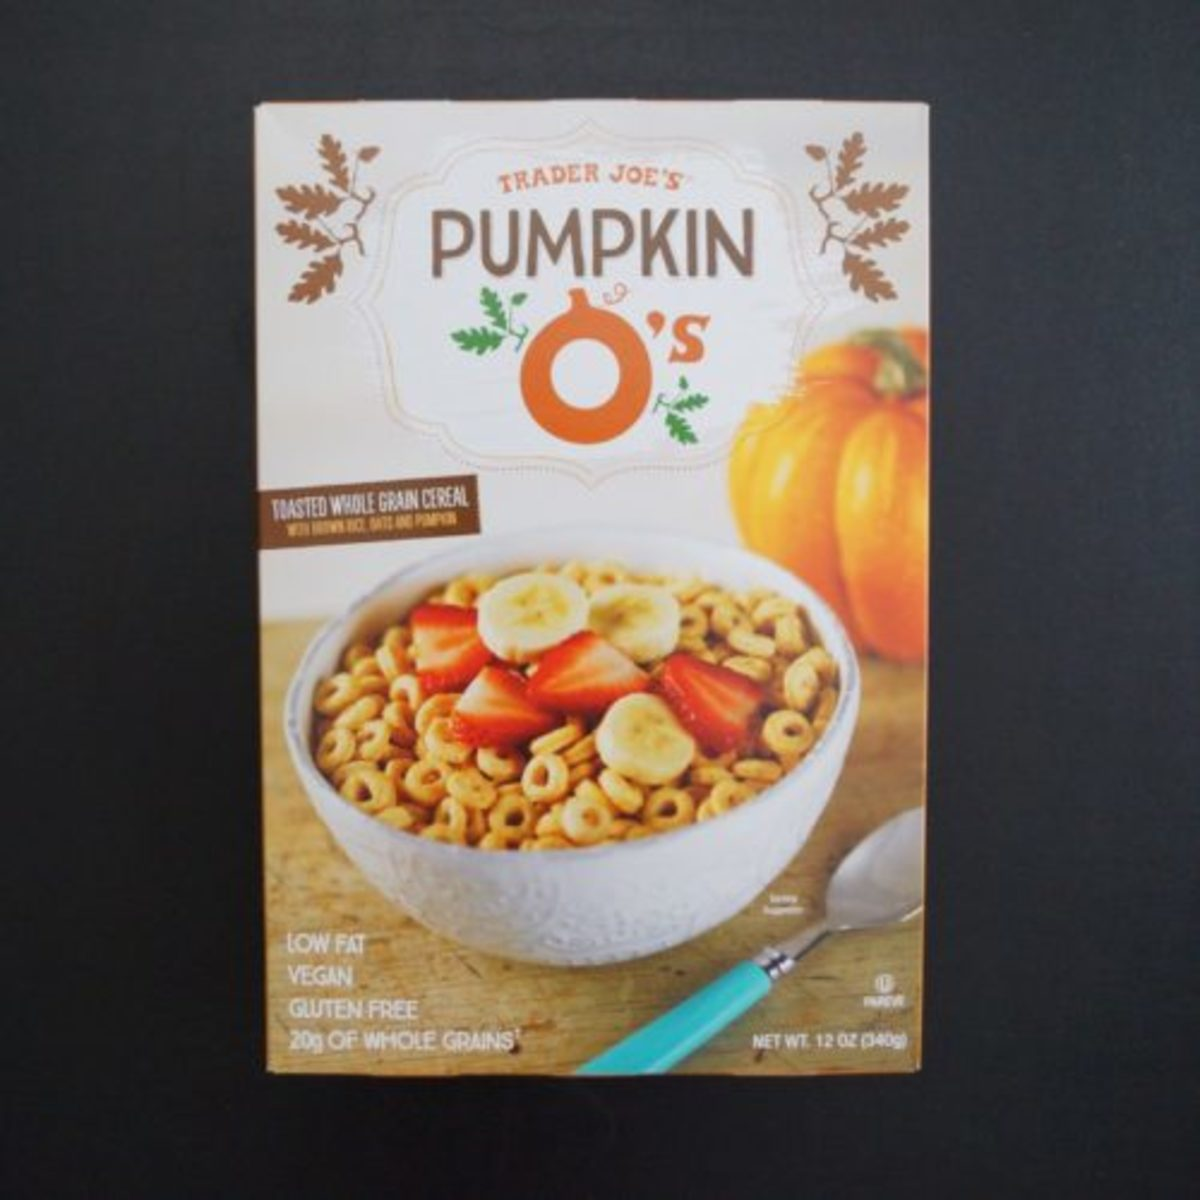 15 Pumpkin Items from Trader Joe's You NEED In Your Life